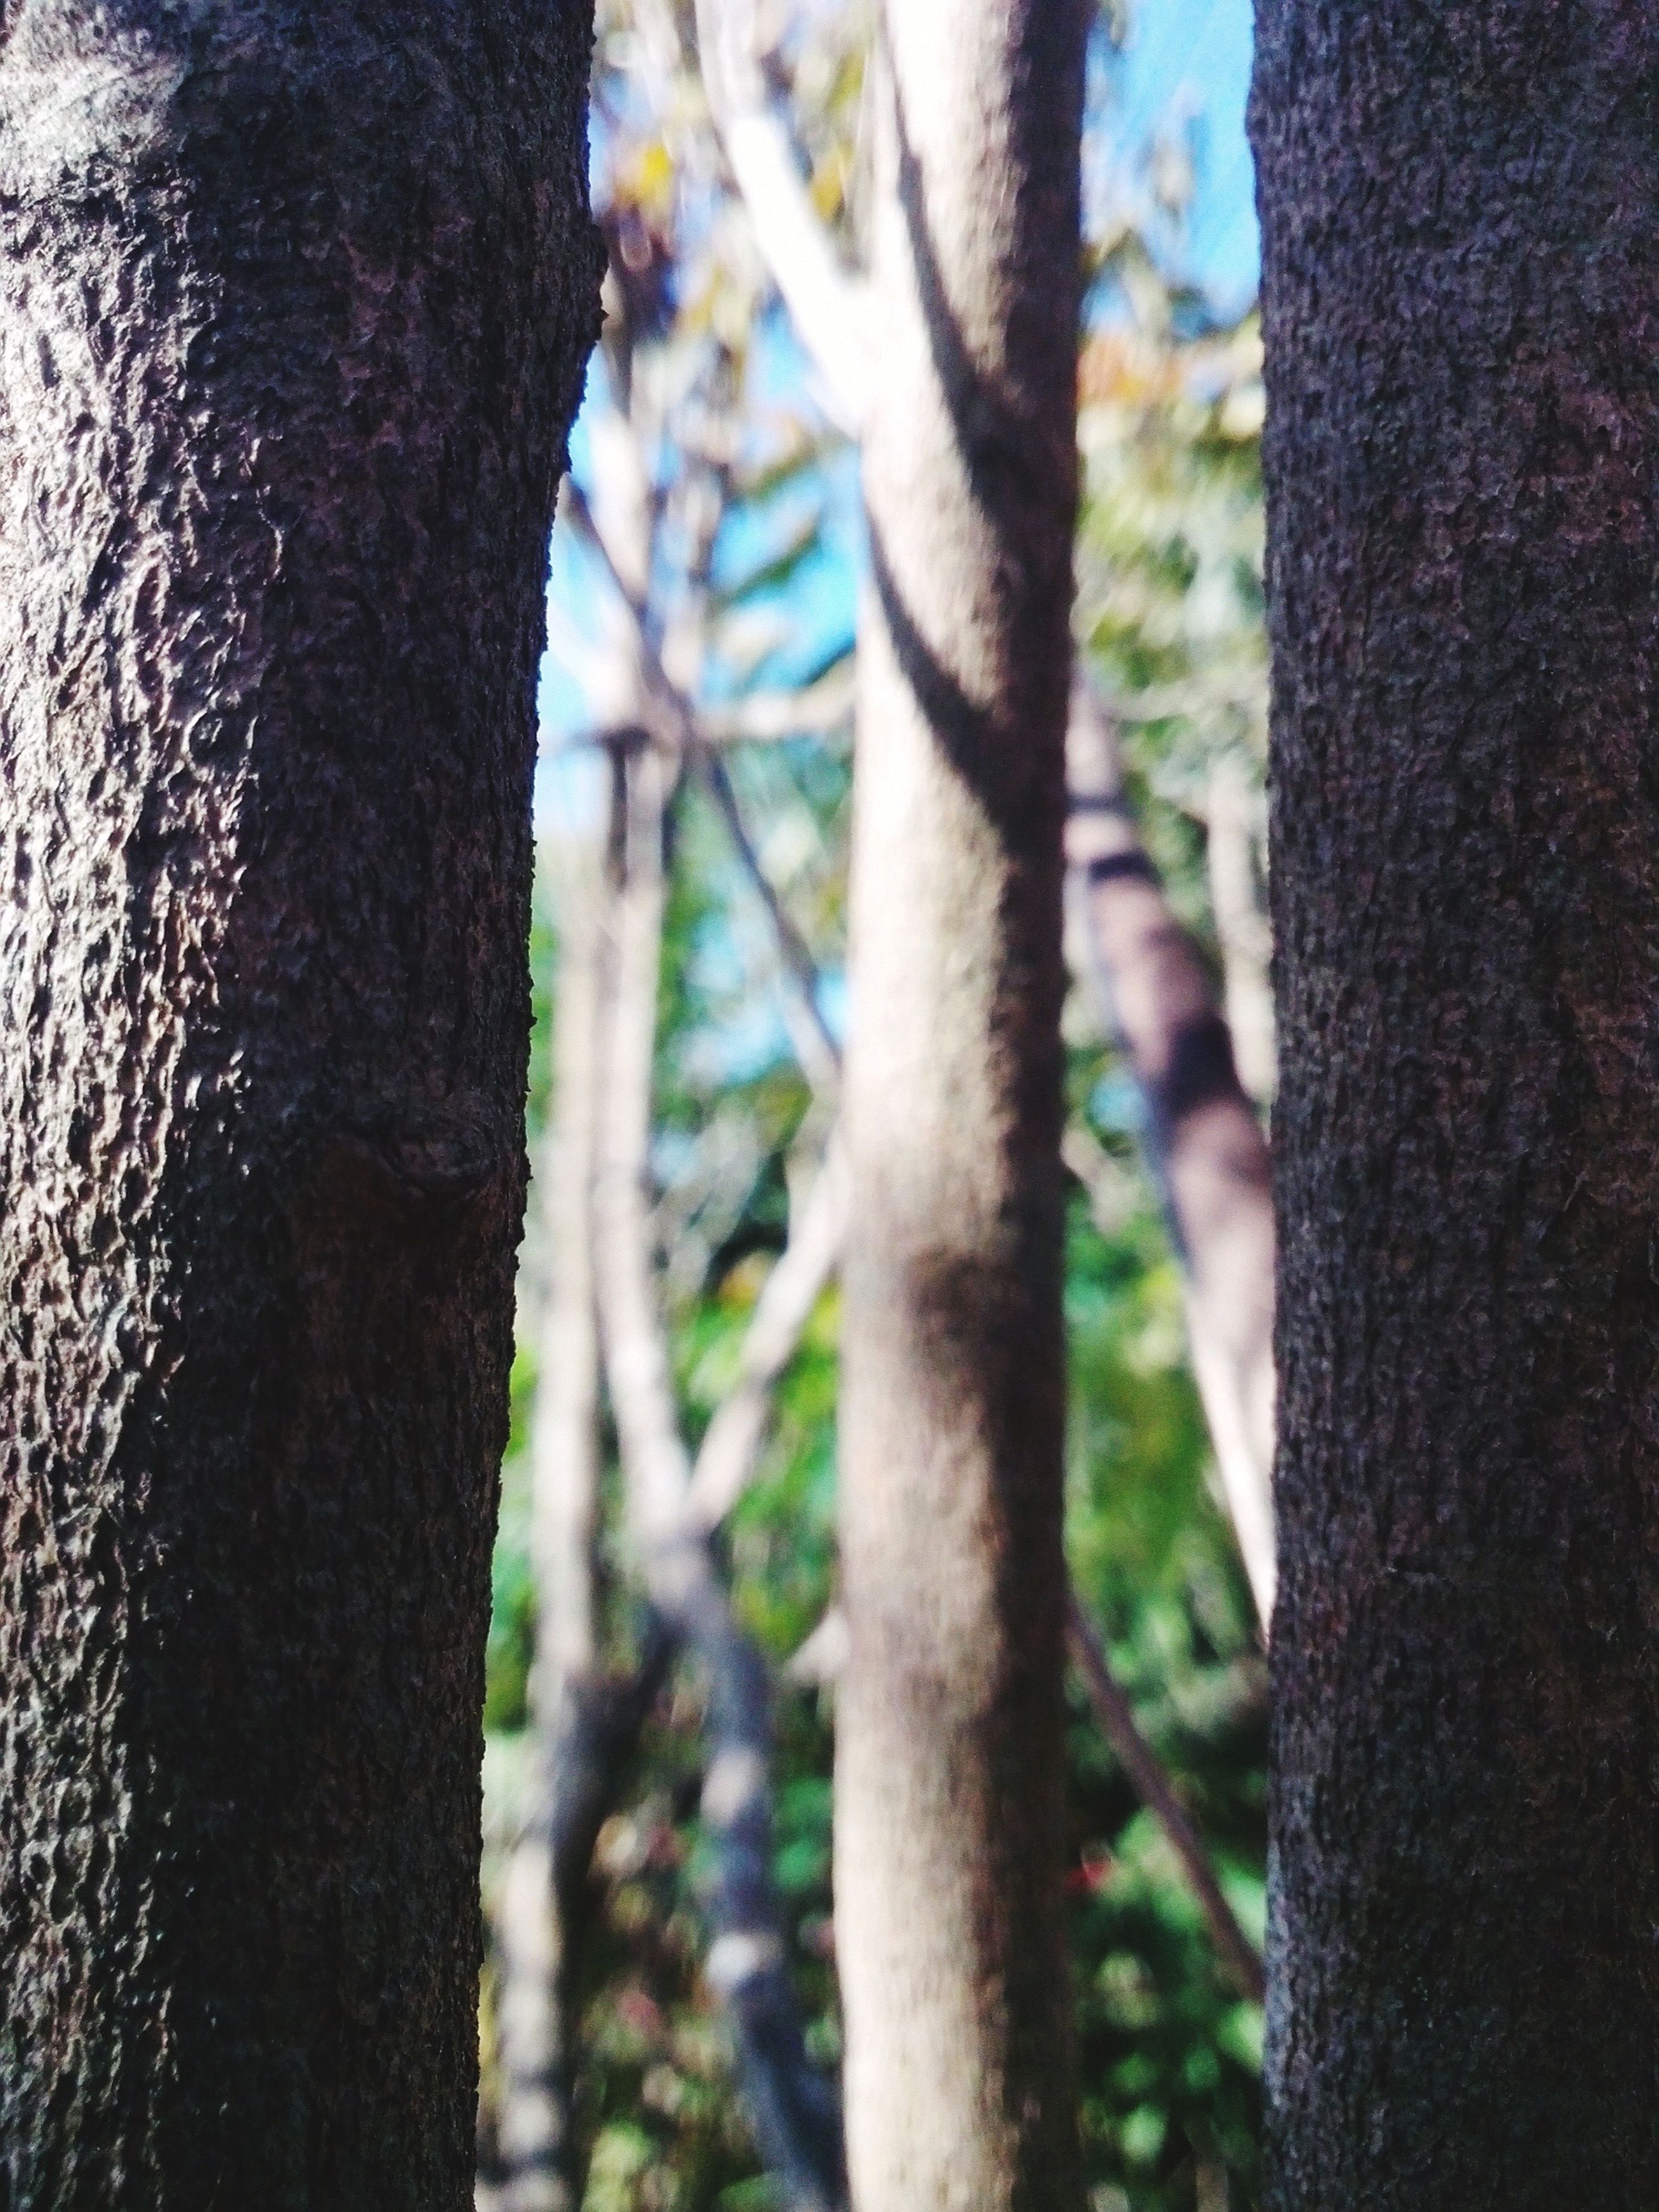 tree trunk, tree, focus on foreground, close-up, textured, nature, branch, growth, outdoors, day, tranquility, part of, selective focus, no people, forest, bark, sunlight, beauty in nature, wood - material, rough